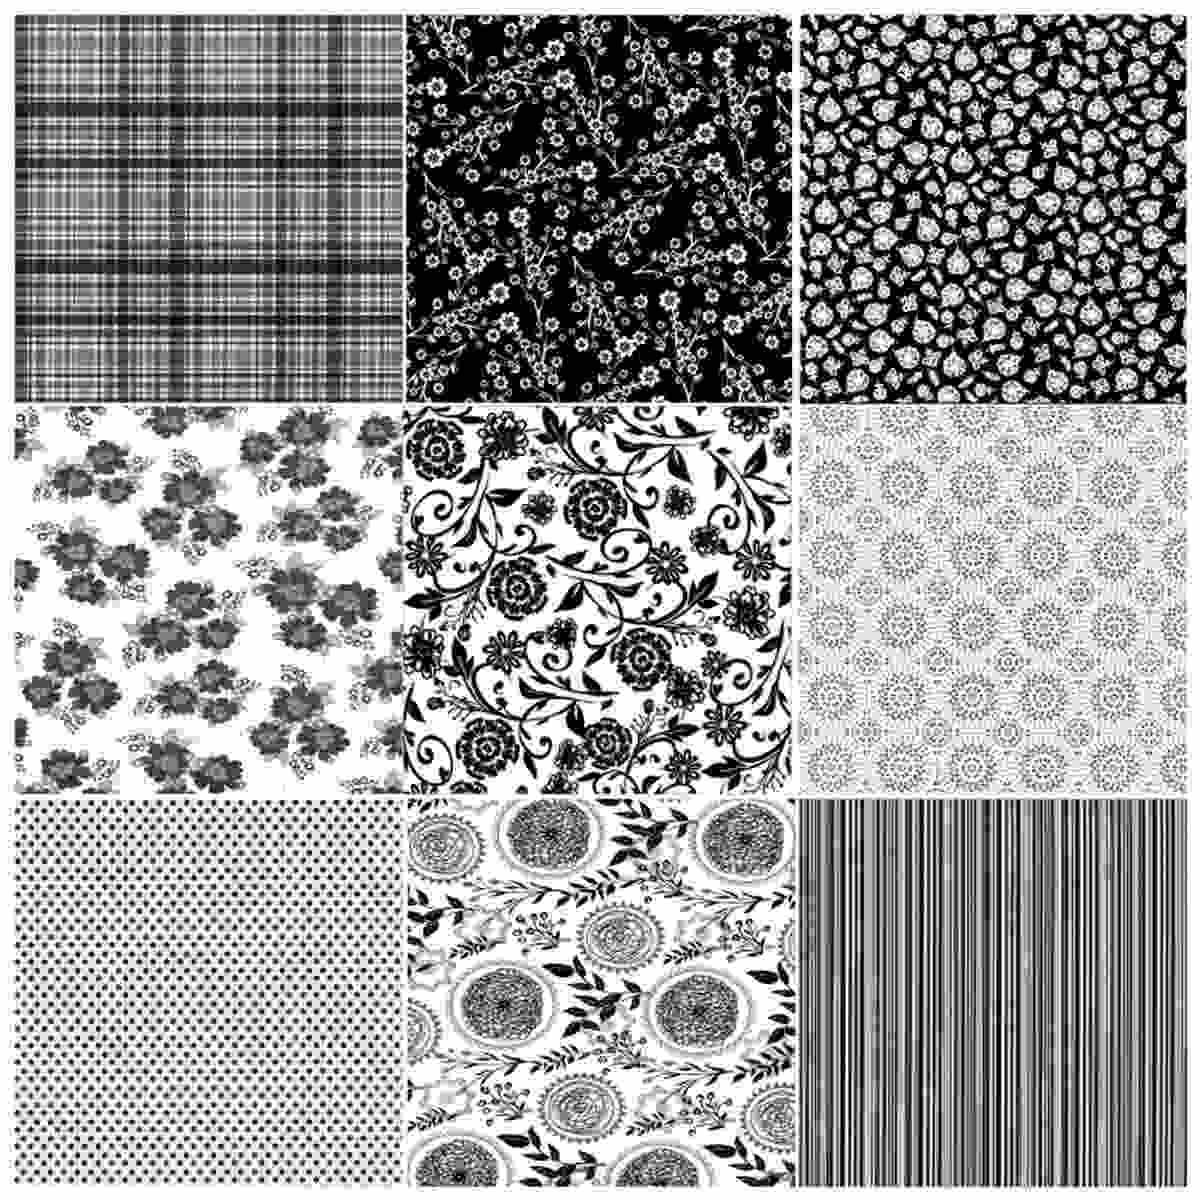 JAGS Capsule Collection BK and WT 12x12 Inch Printed Paper for Crafts 2 Sheets Each of 16 Designs for Making DIY Greetings and Scrapbooking Pack of 32